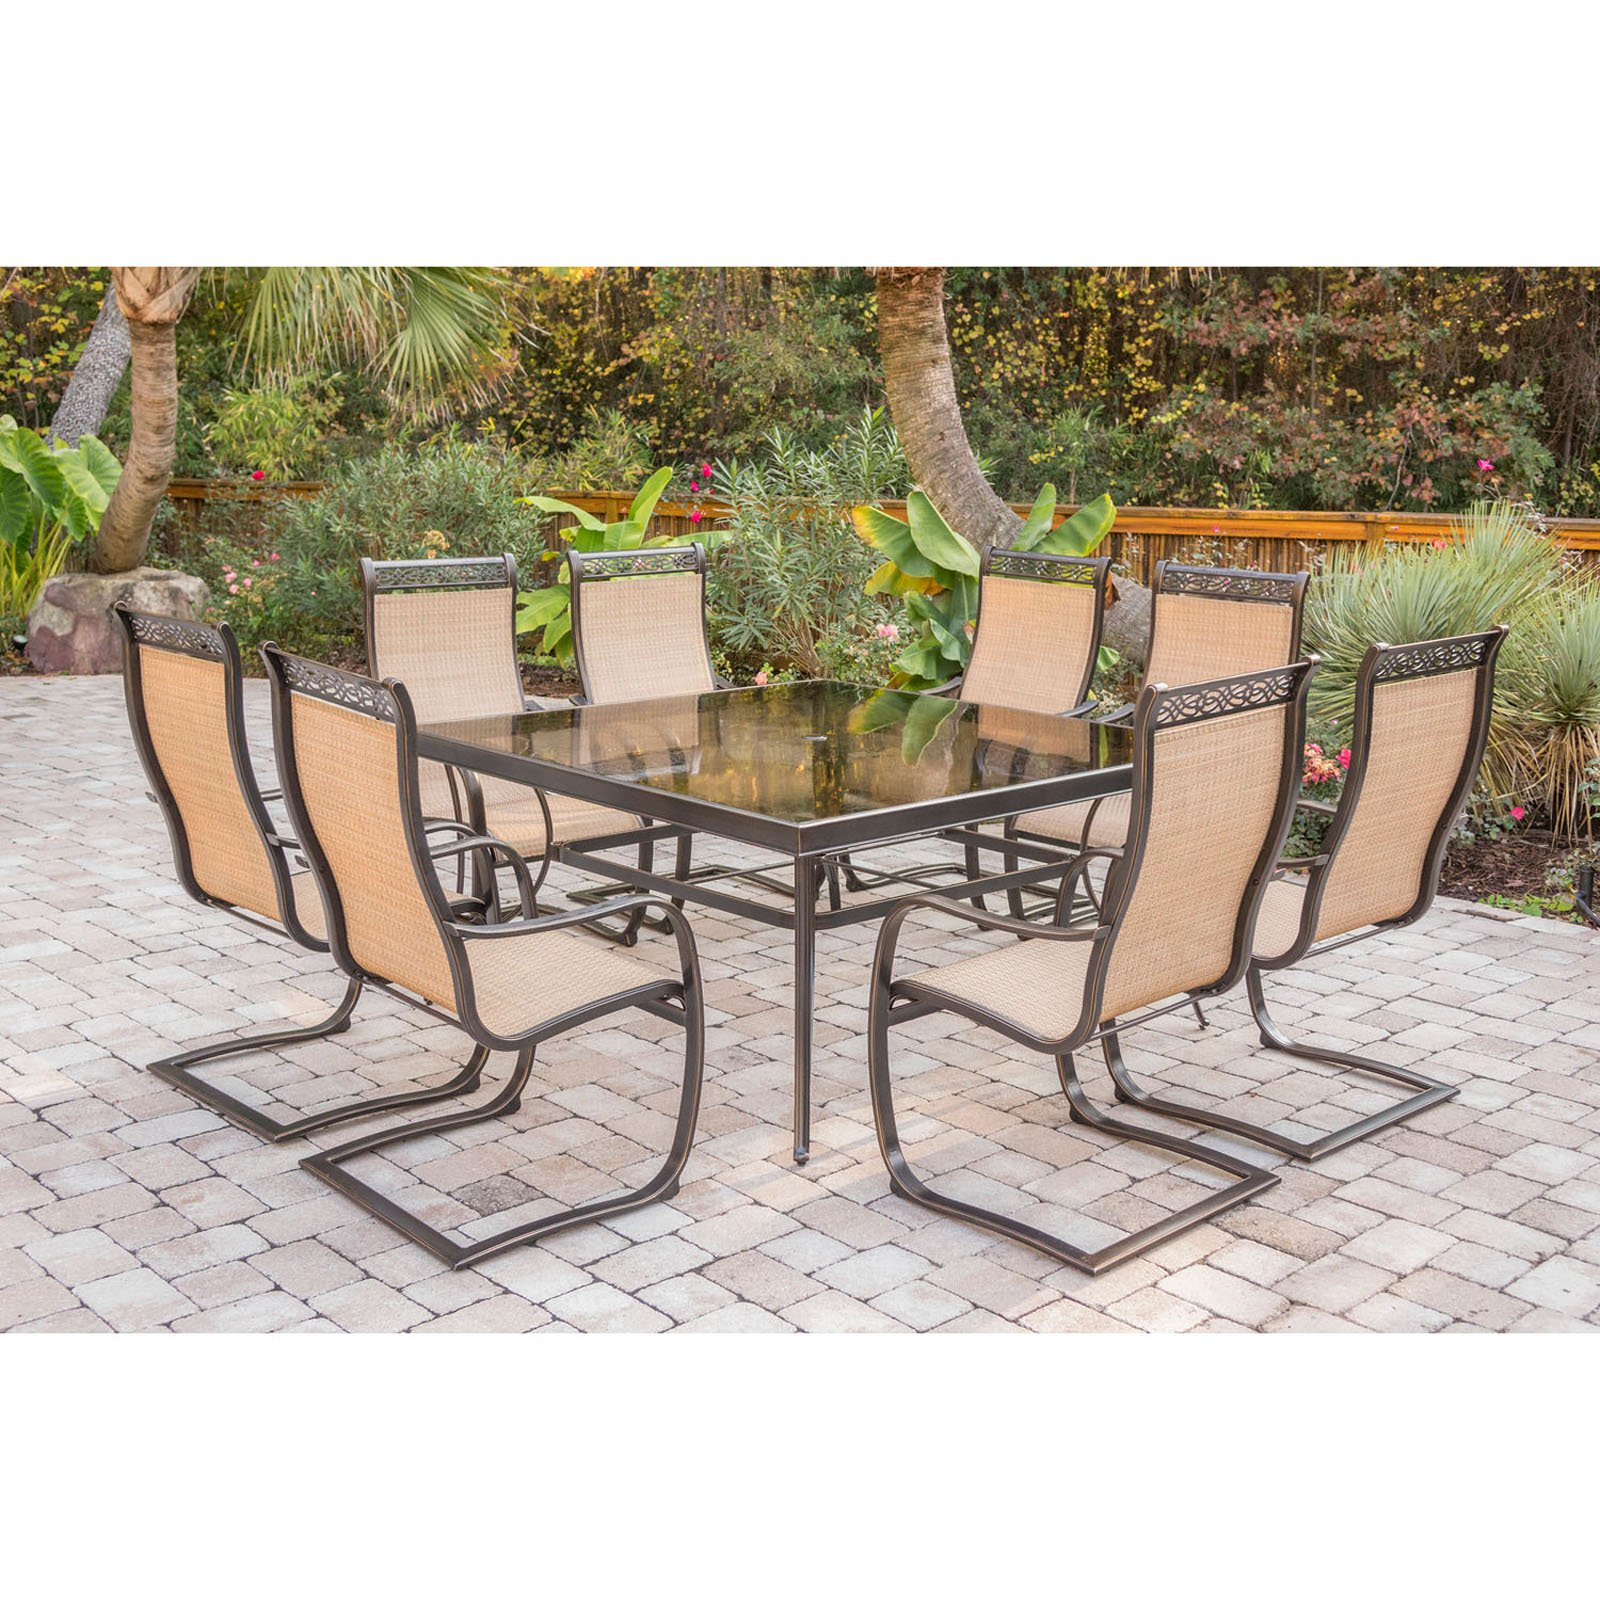 """Hanover Outdoor Monaco 9-Piece Sling Dining Set with 60"""" Square Glass-Top Table and 8 C-Spring Chairs in Cedar"""